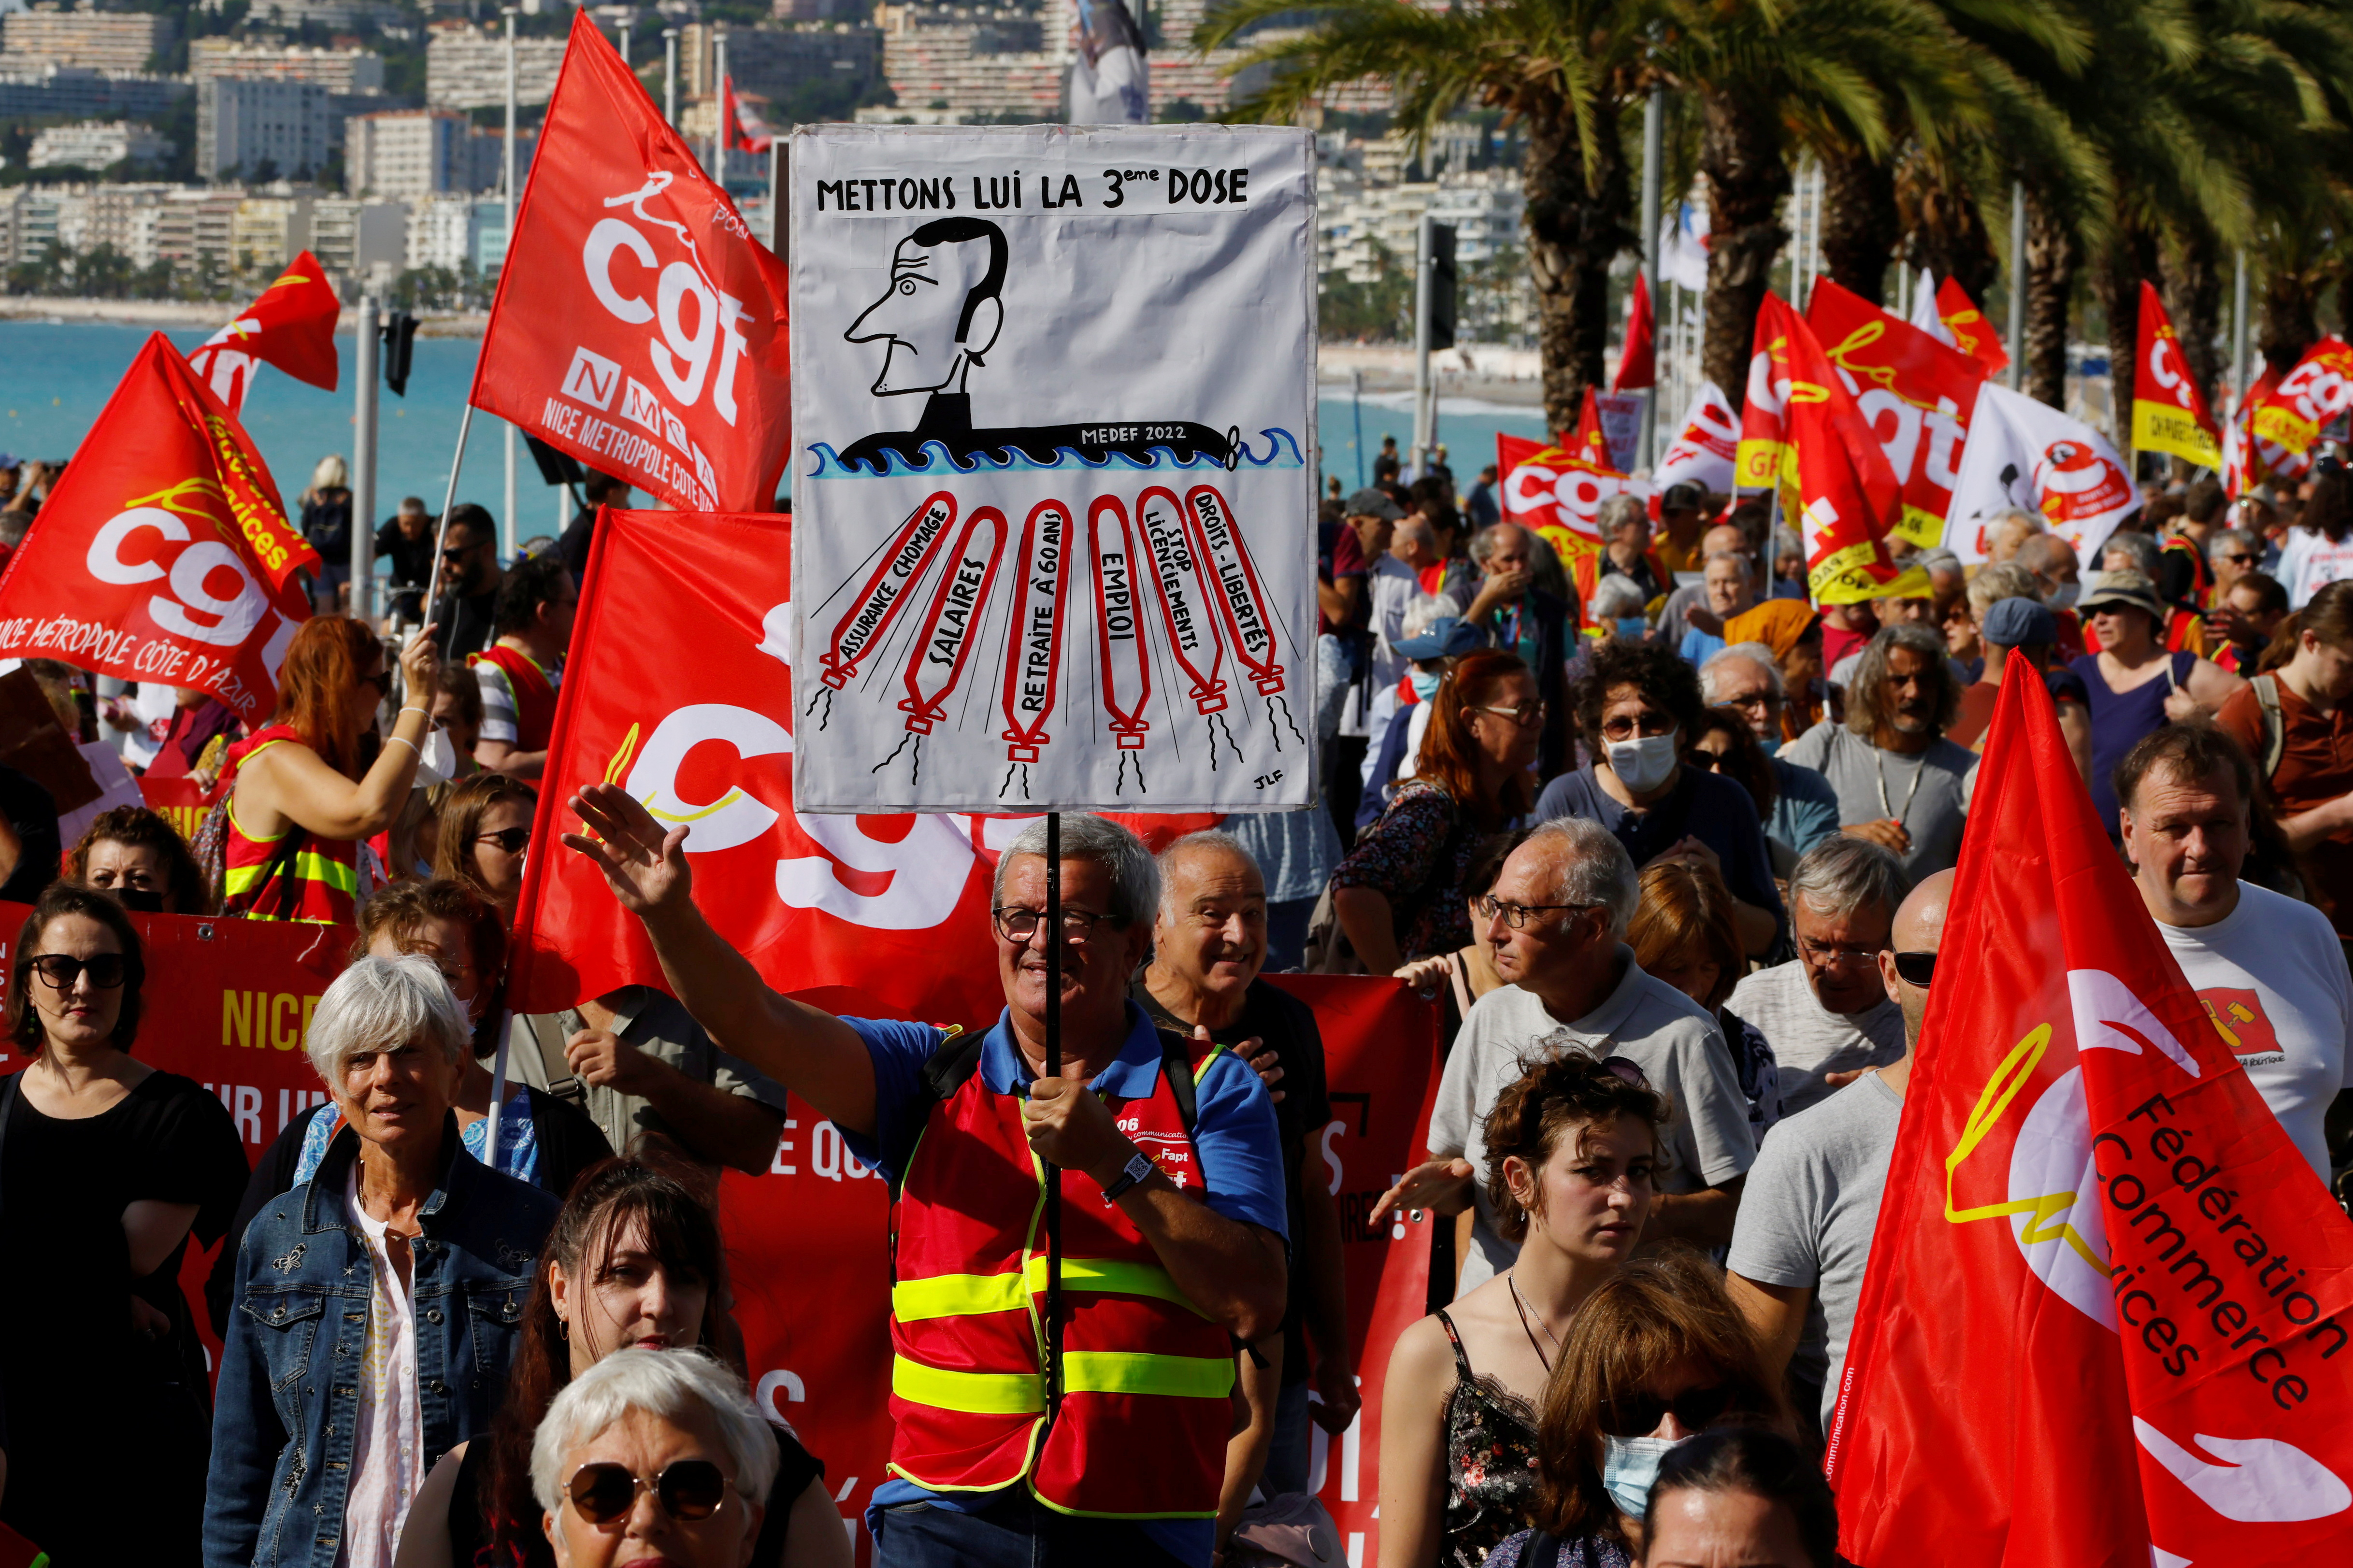 CGT labour union members attend a demonstration in Nice as part of a day of strikes and protests against French government's economic and social policies, France, October 5, 2021.   REUTERS/Eric Gaillard